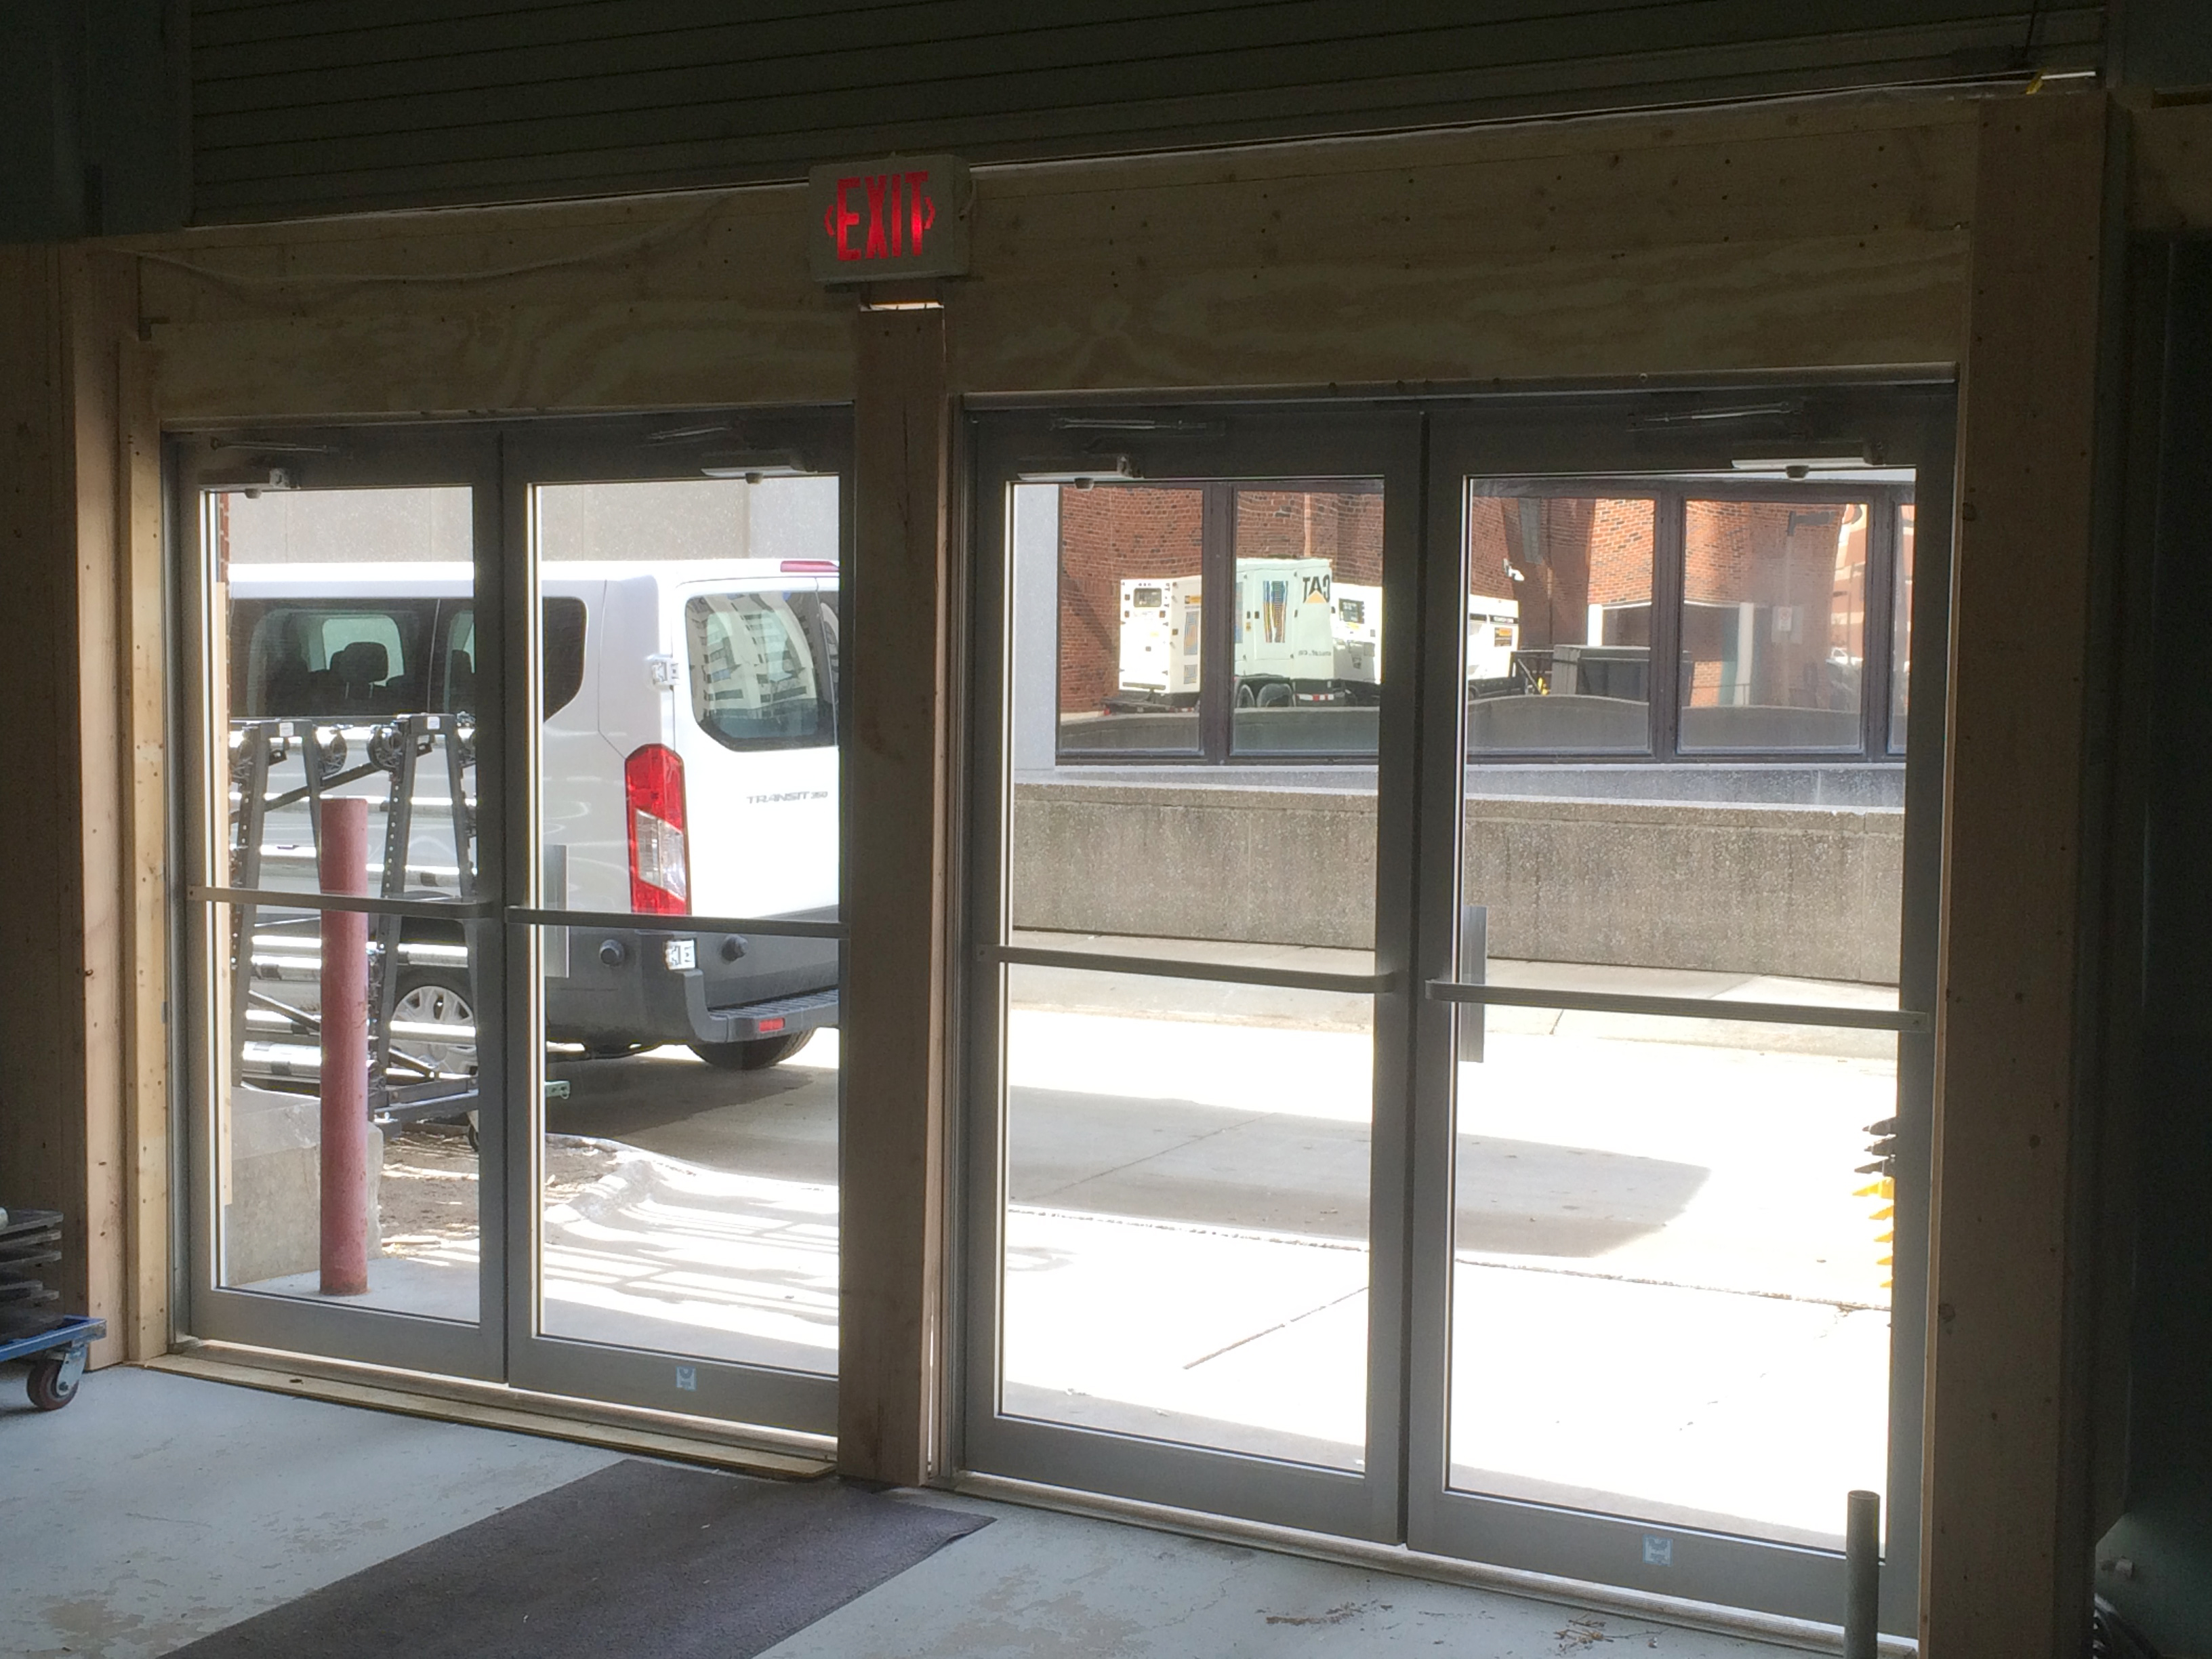 Temporary Double Glass Door Fire Exits To Increase Event Hall